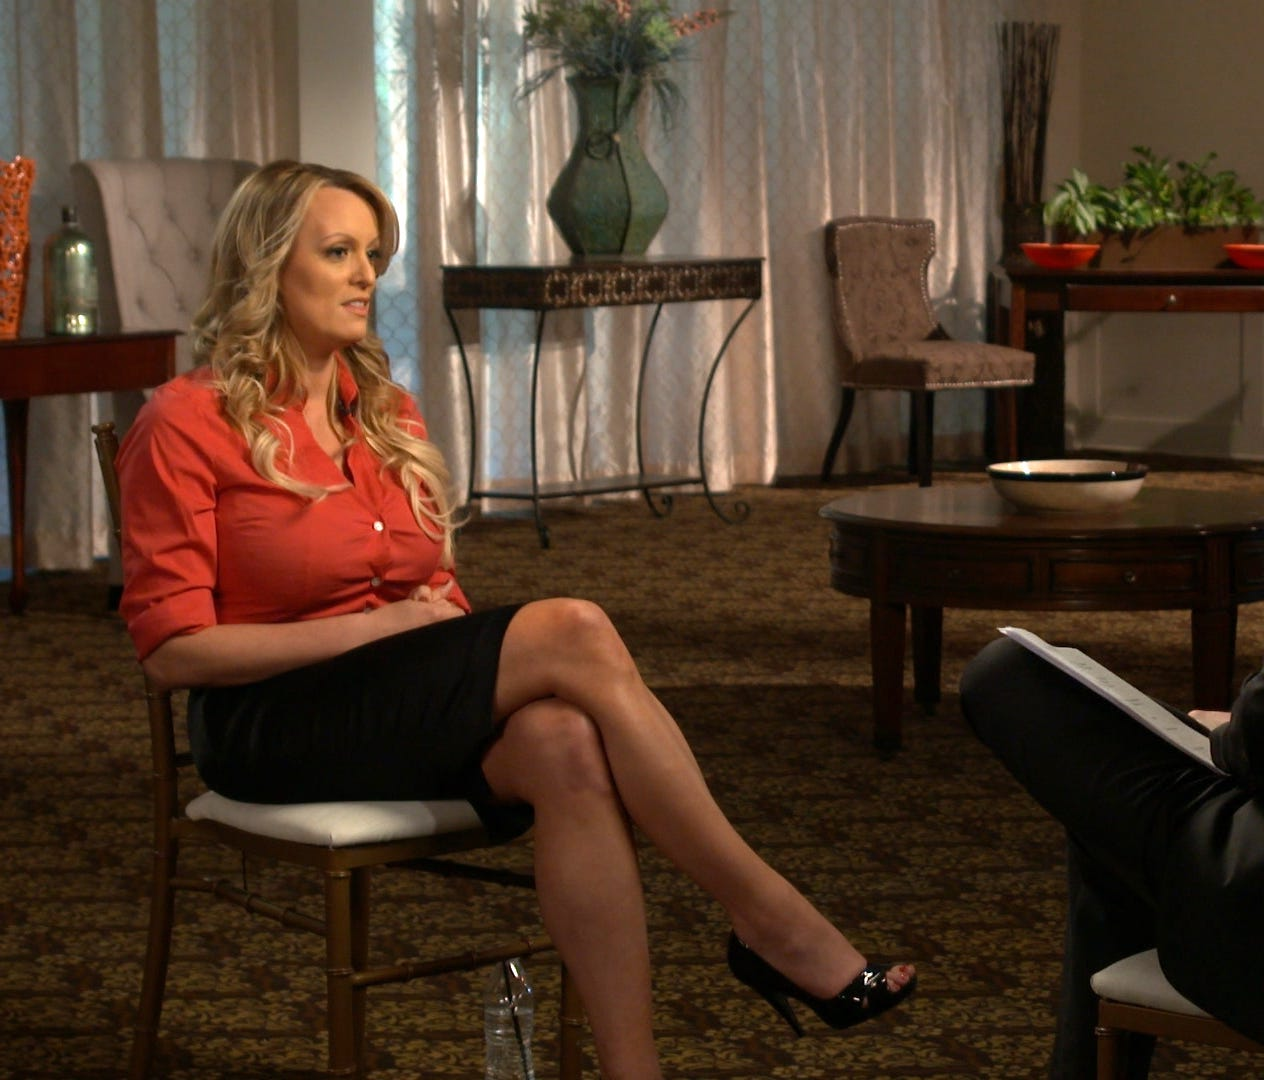 This image released by CBS News shows Stormy Daniels, left, during an interview with Anderson Cooper, scheduled to air Sunday on